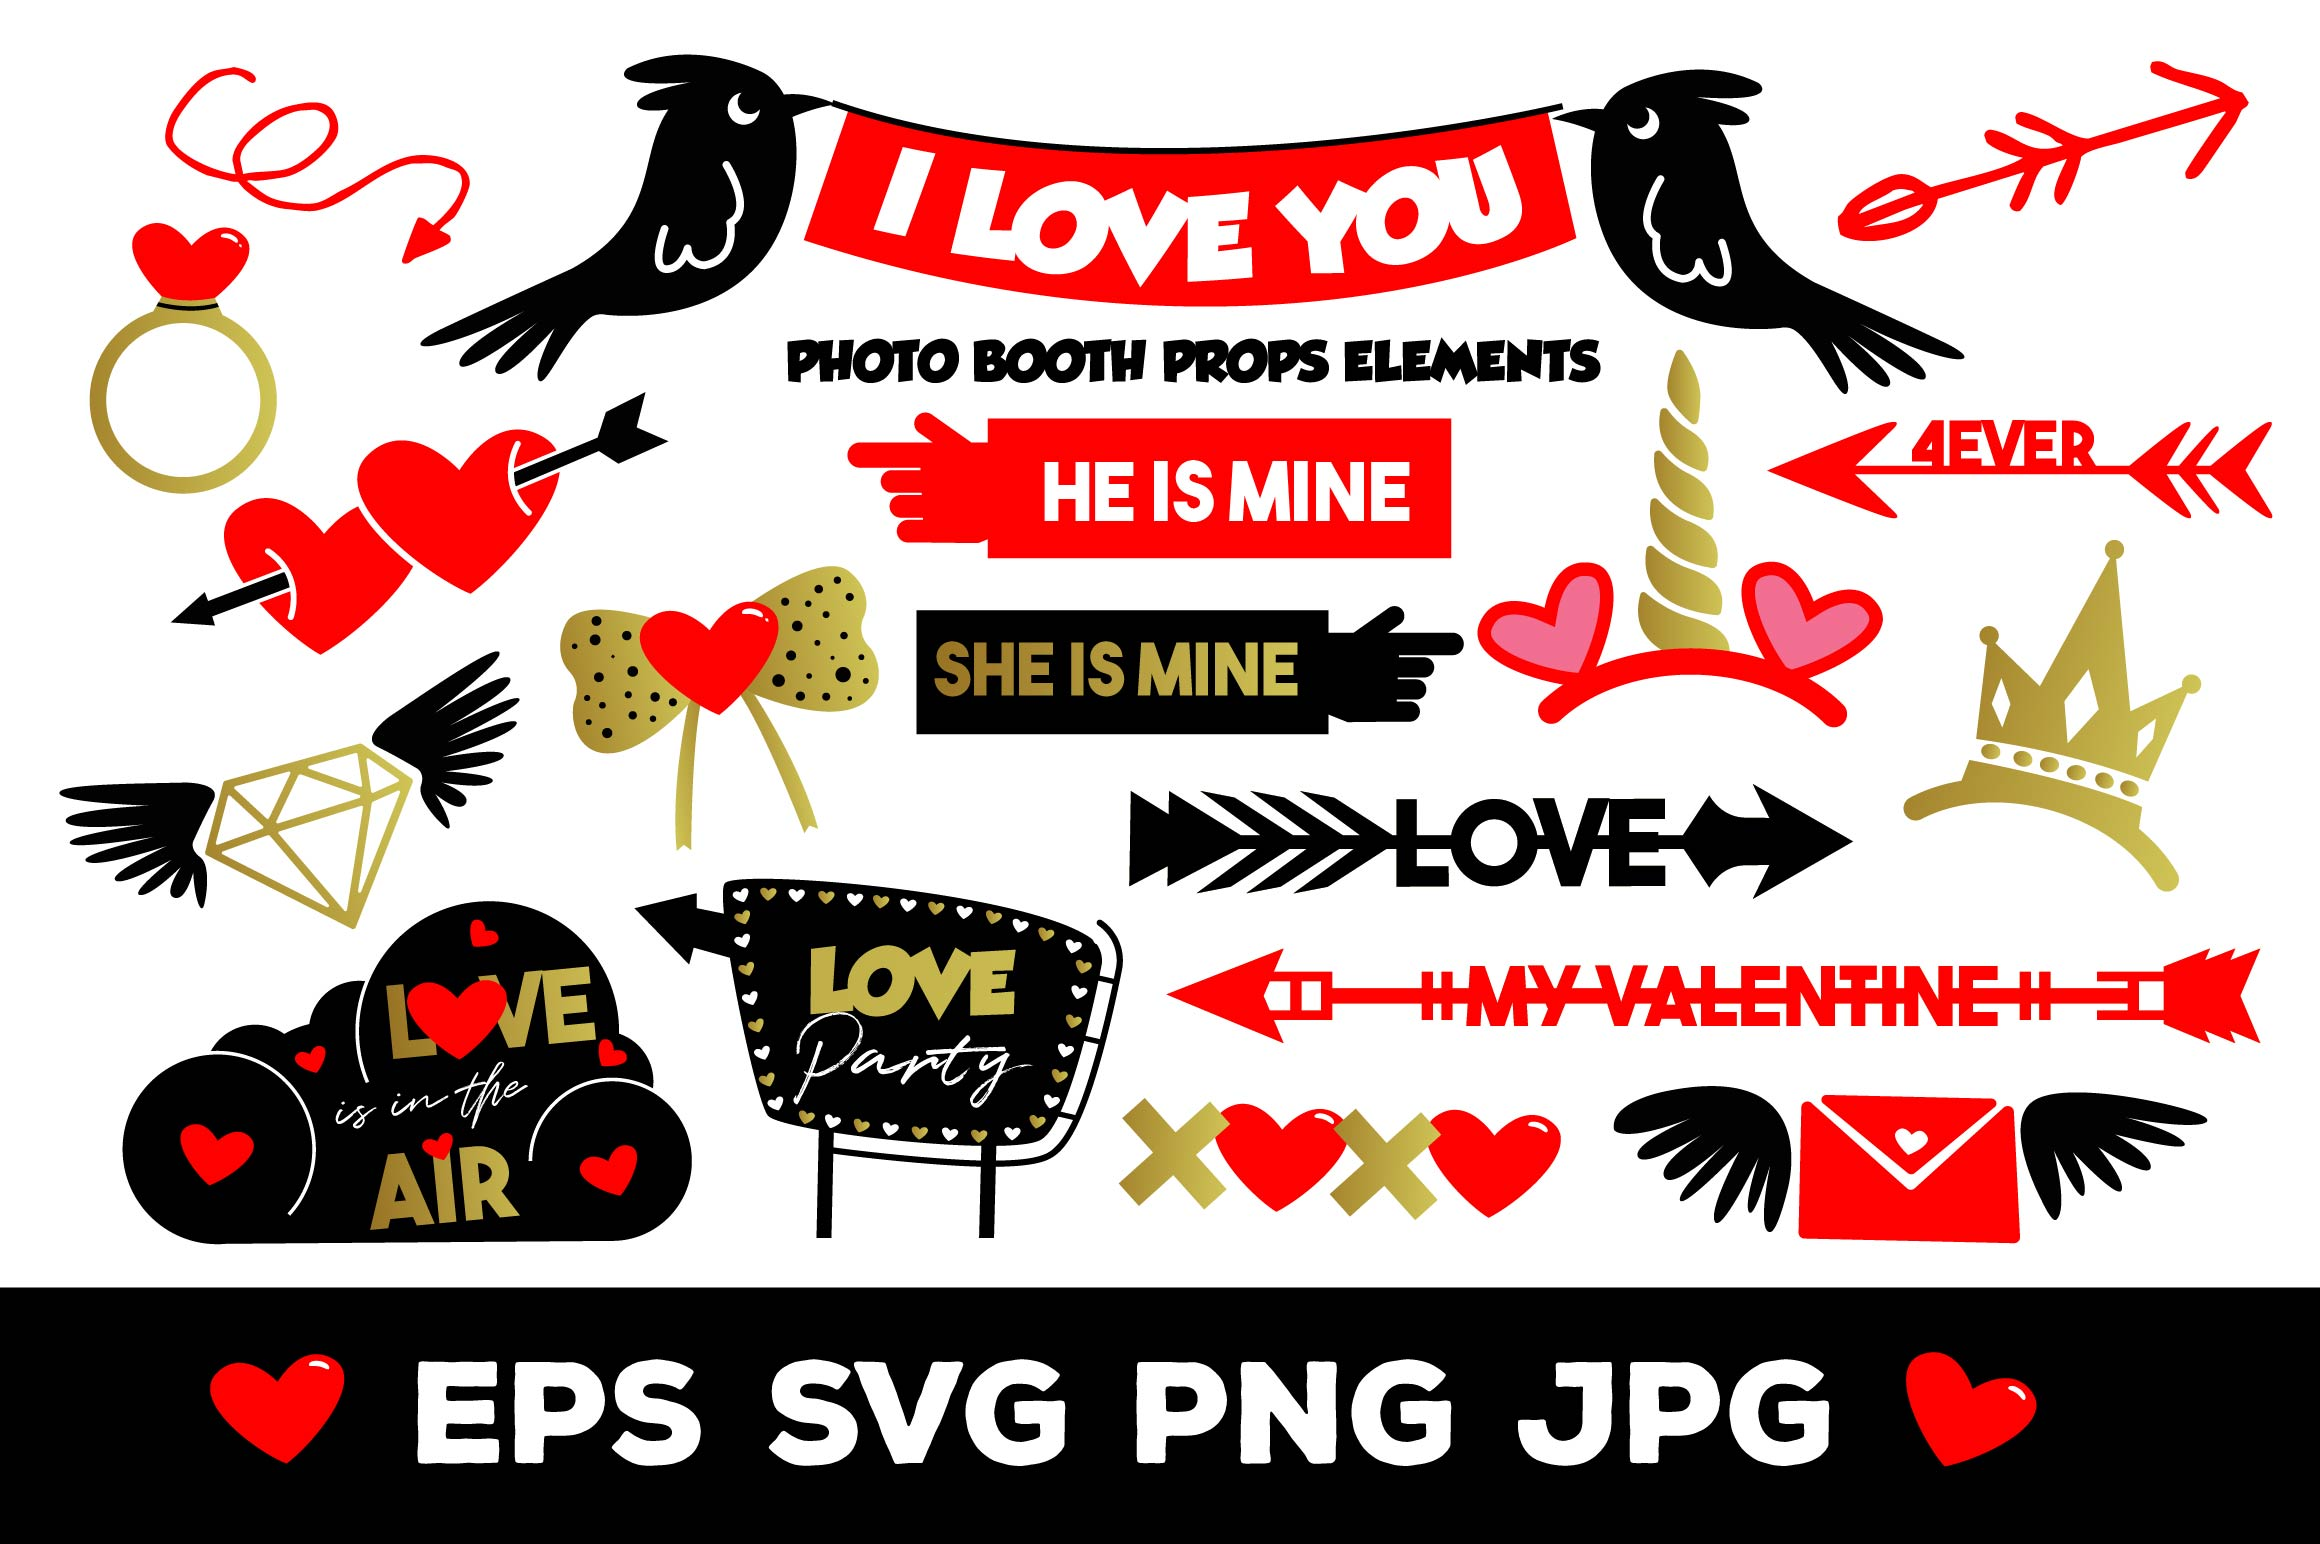 Download Free I Love You Photo Booth Props Elements Grafico Por for Cricut Explore, Silhouette and other cutting machines.